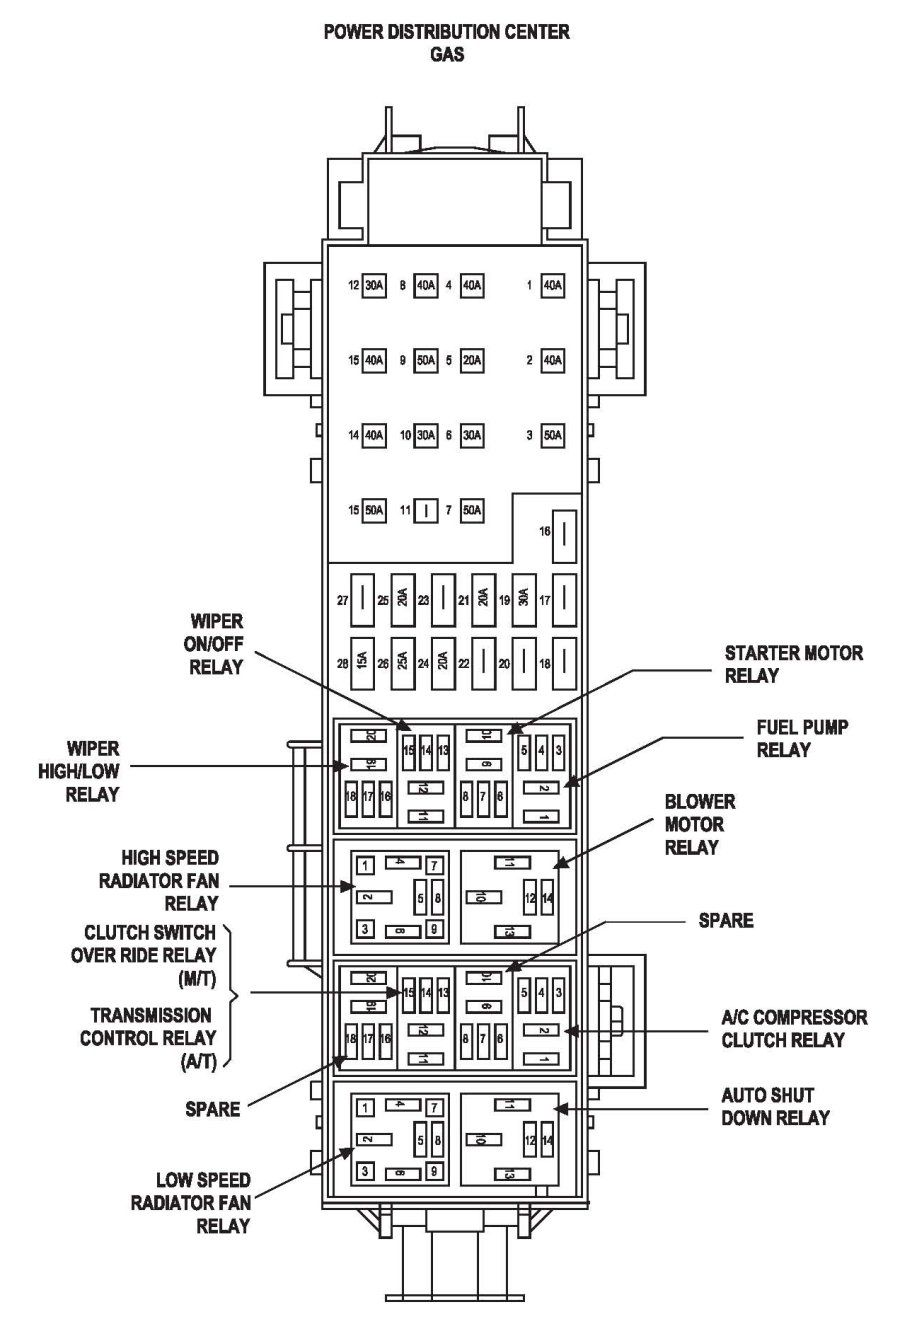 jeep liberty fuse box diagram image details jeep liberty rh pinterest com fuse  box diagram for a mazda 2 2018 fuse box diagram sprinter